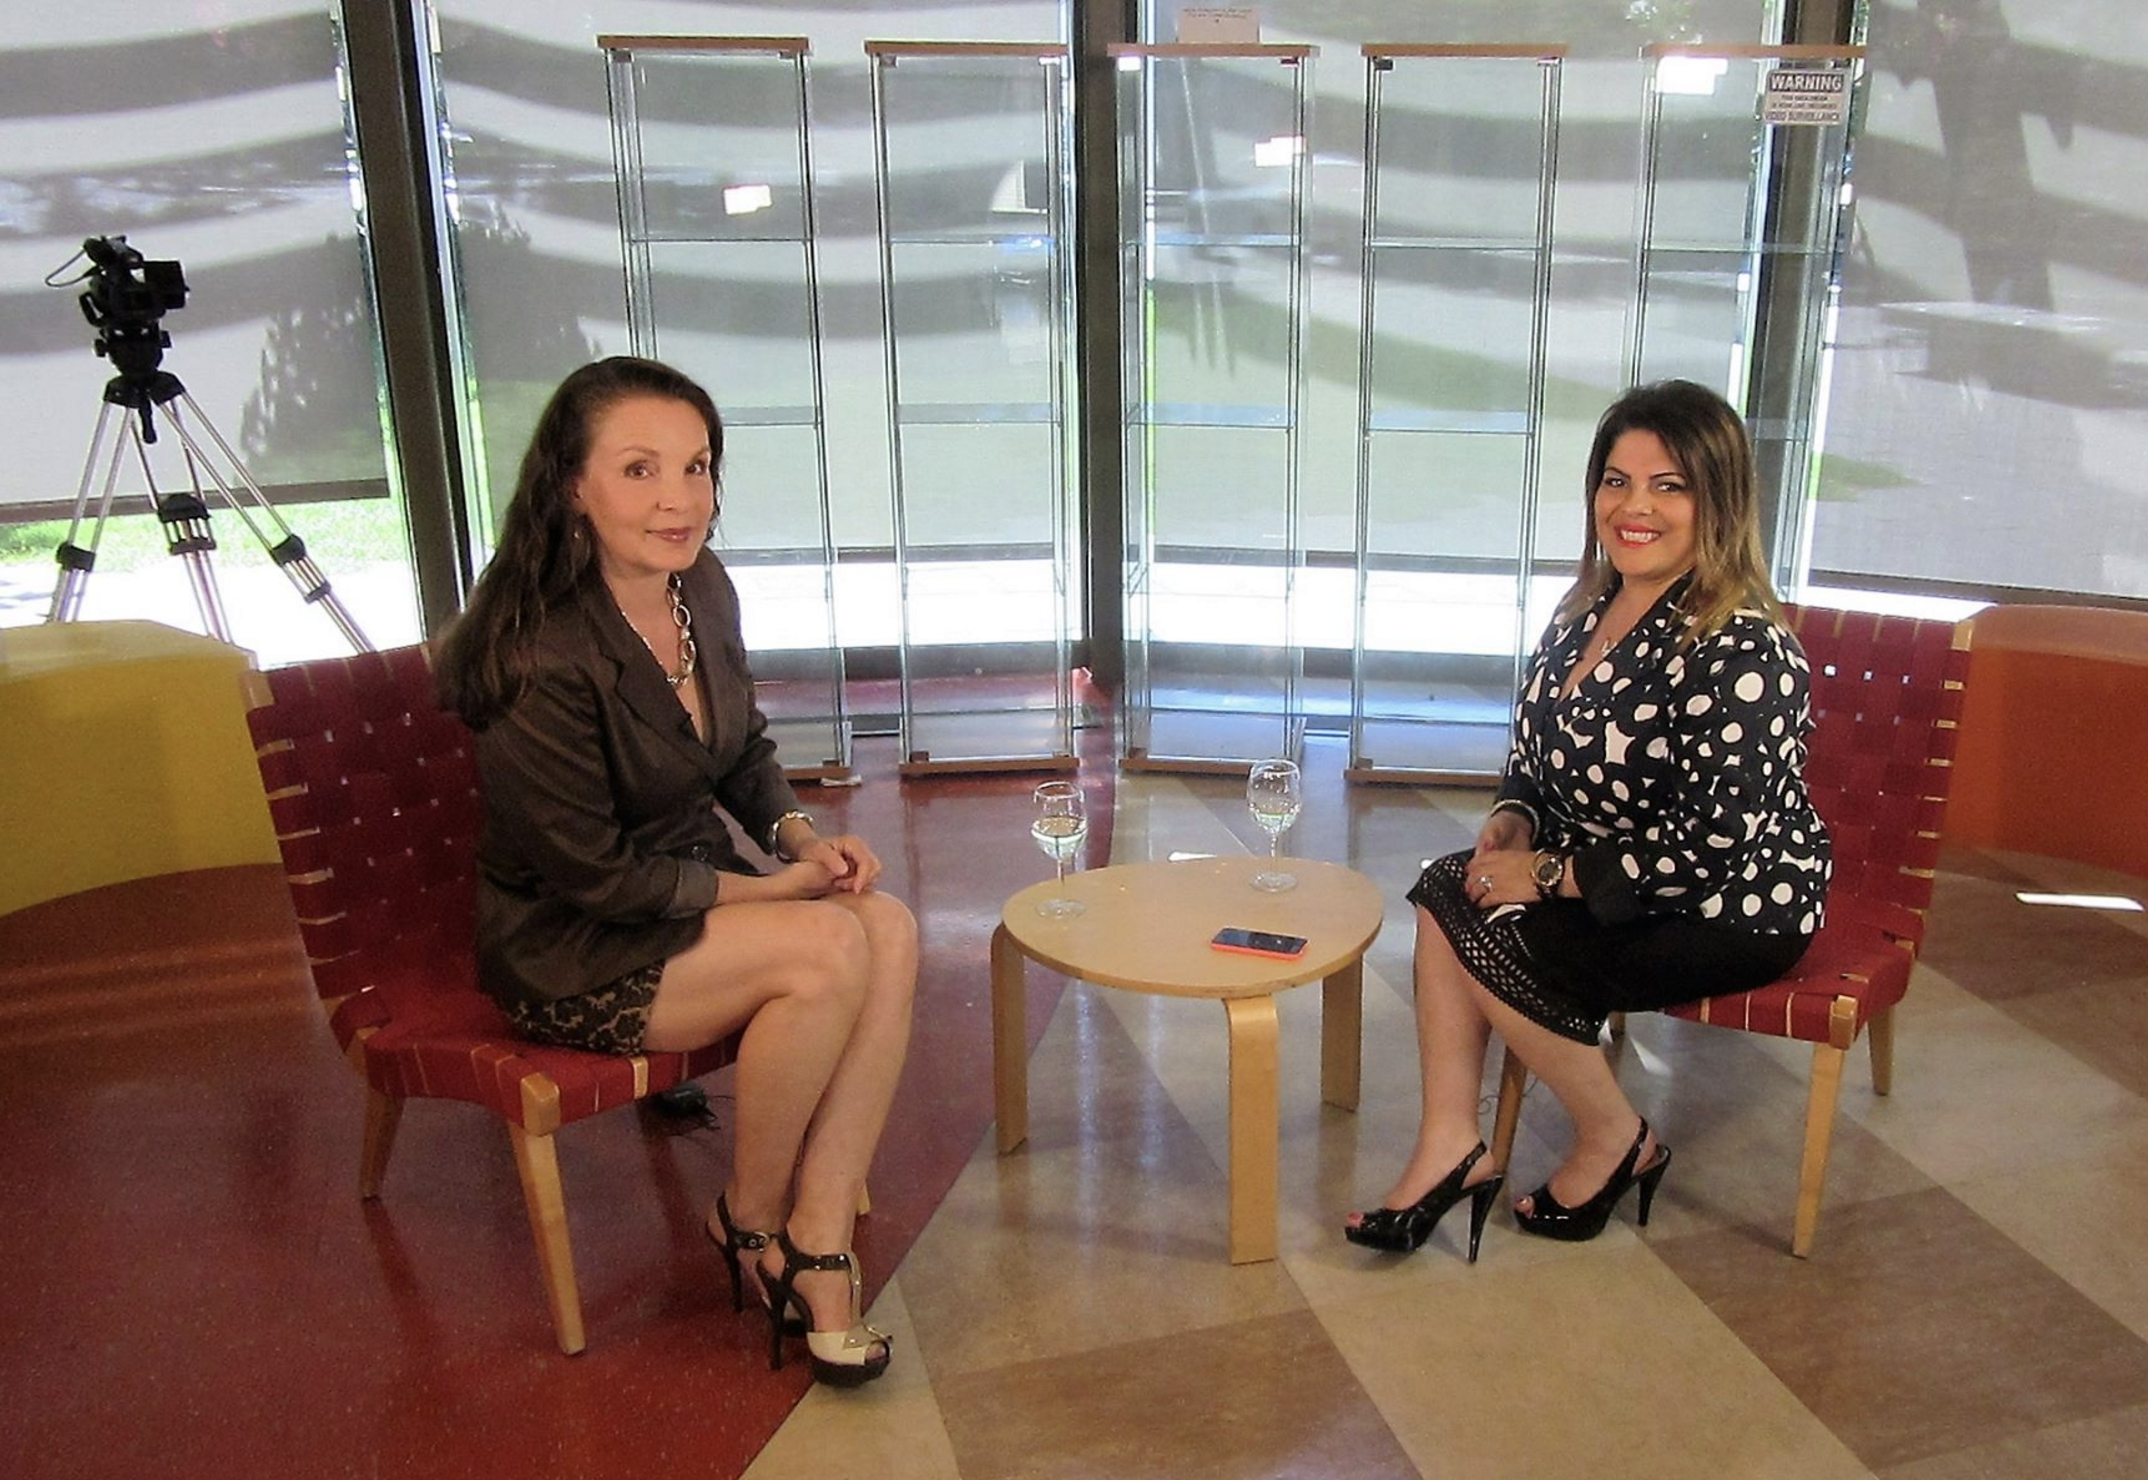 My interview with Cathy Cena on Tri-Cities Community TV